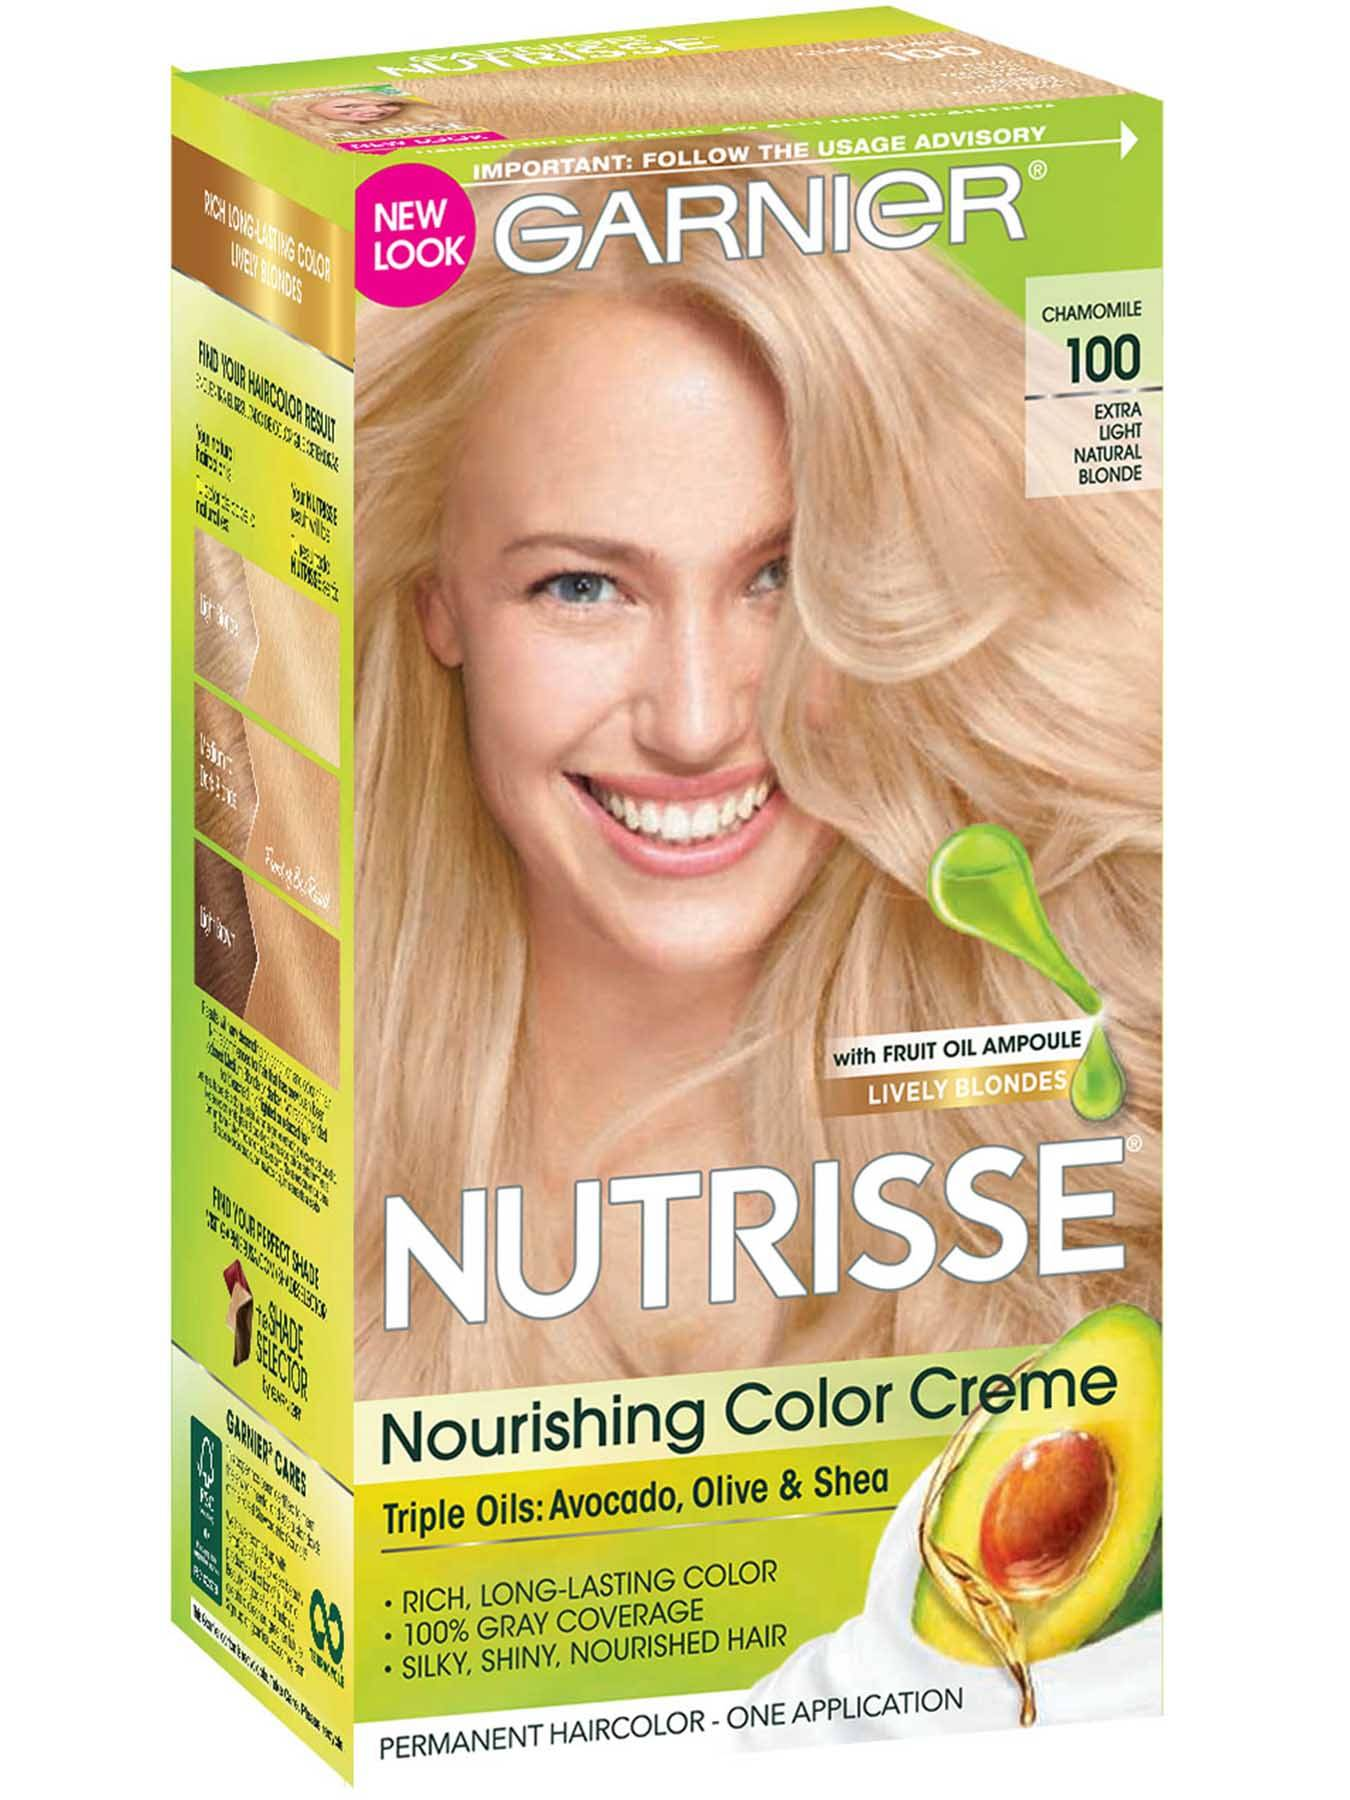 Nourishing Color Creme Extra-Light Natural Blonde 100 (Chamomile).